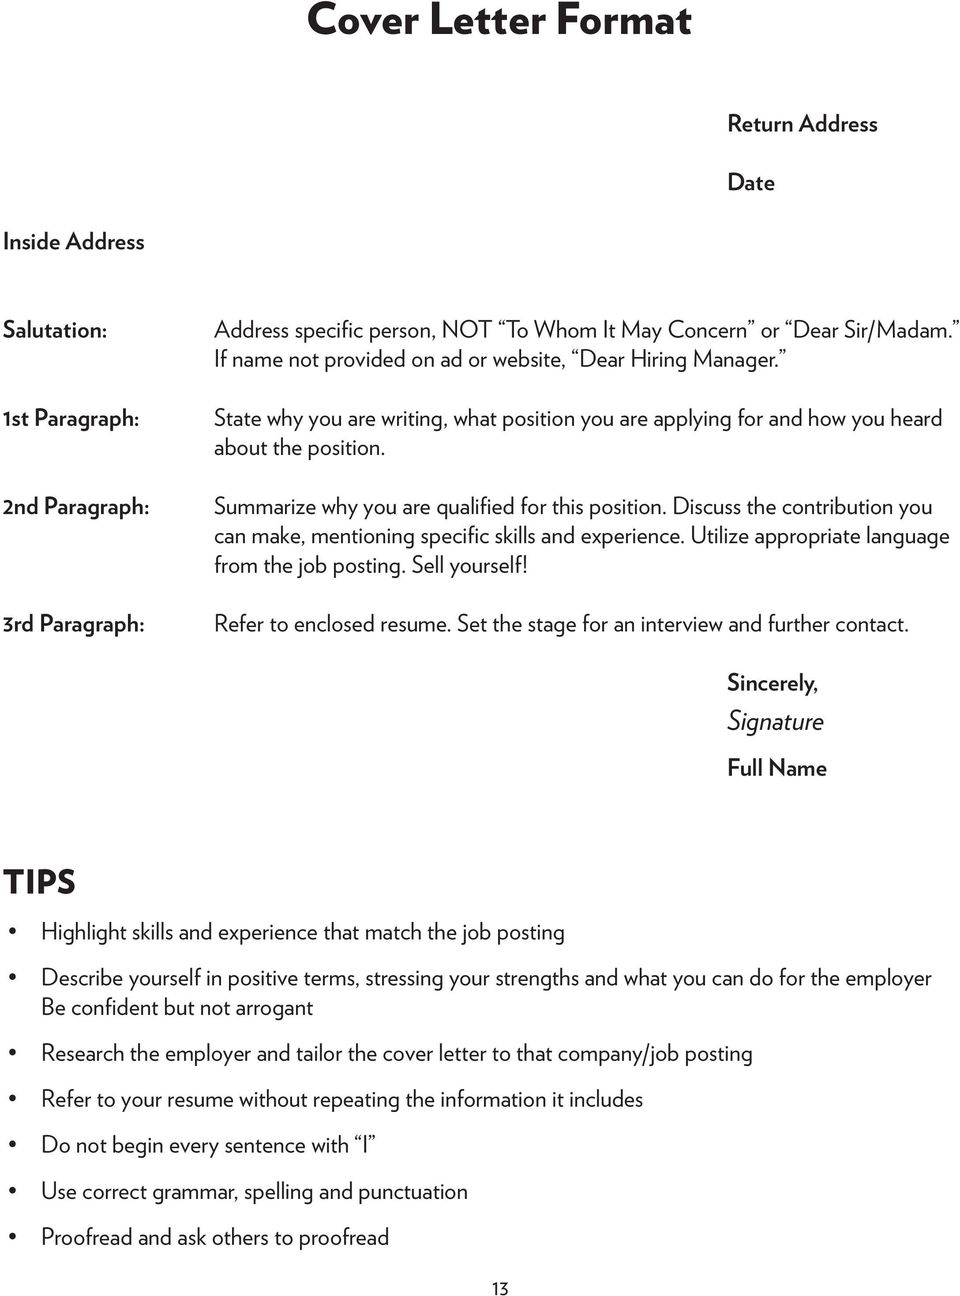 Letter writing services grammar pdf